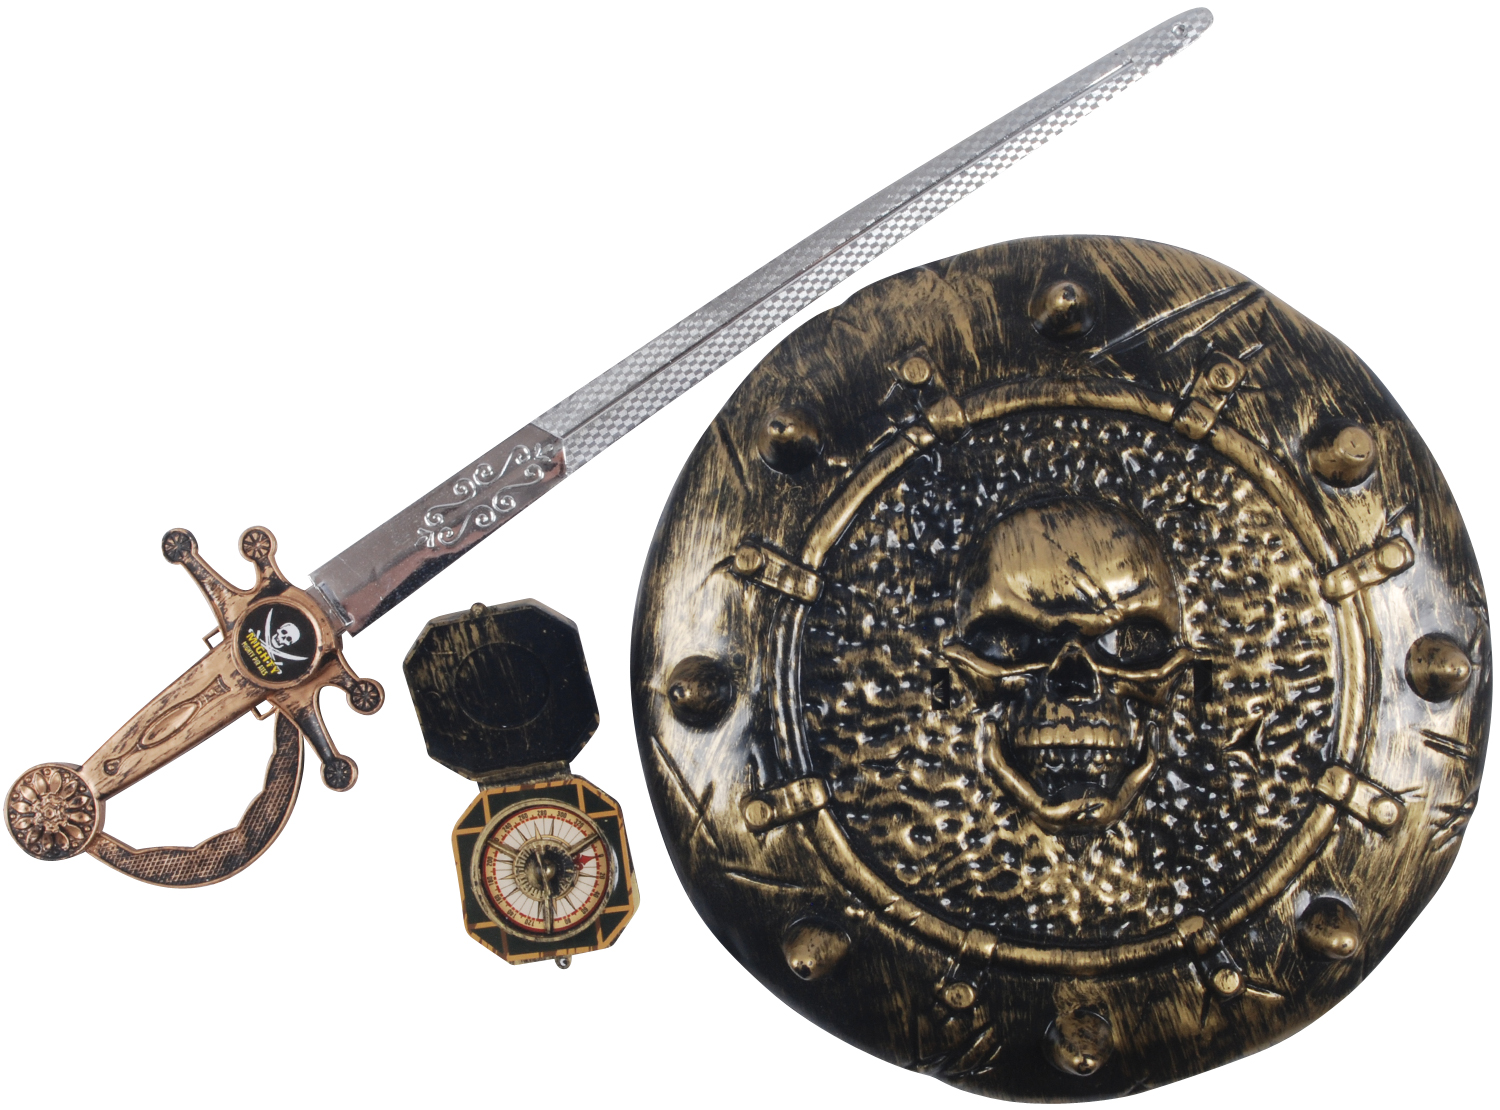 Loftus Pirate Warrior Sword Shield Compass 3pc Accessory Kit, One Size by Loftus International